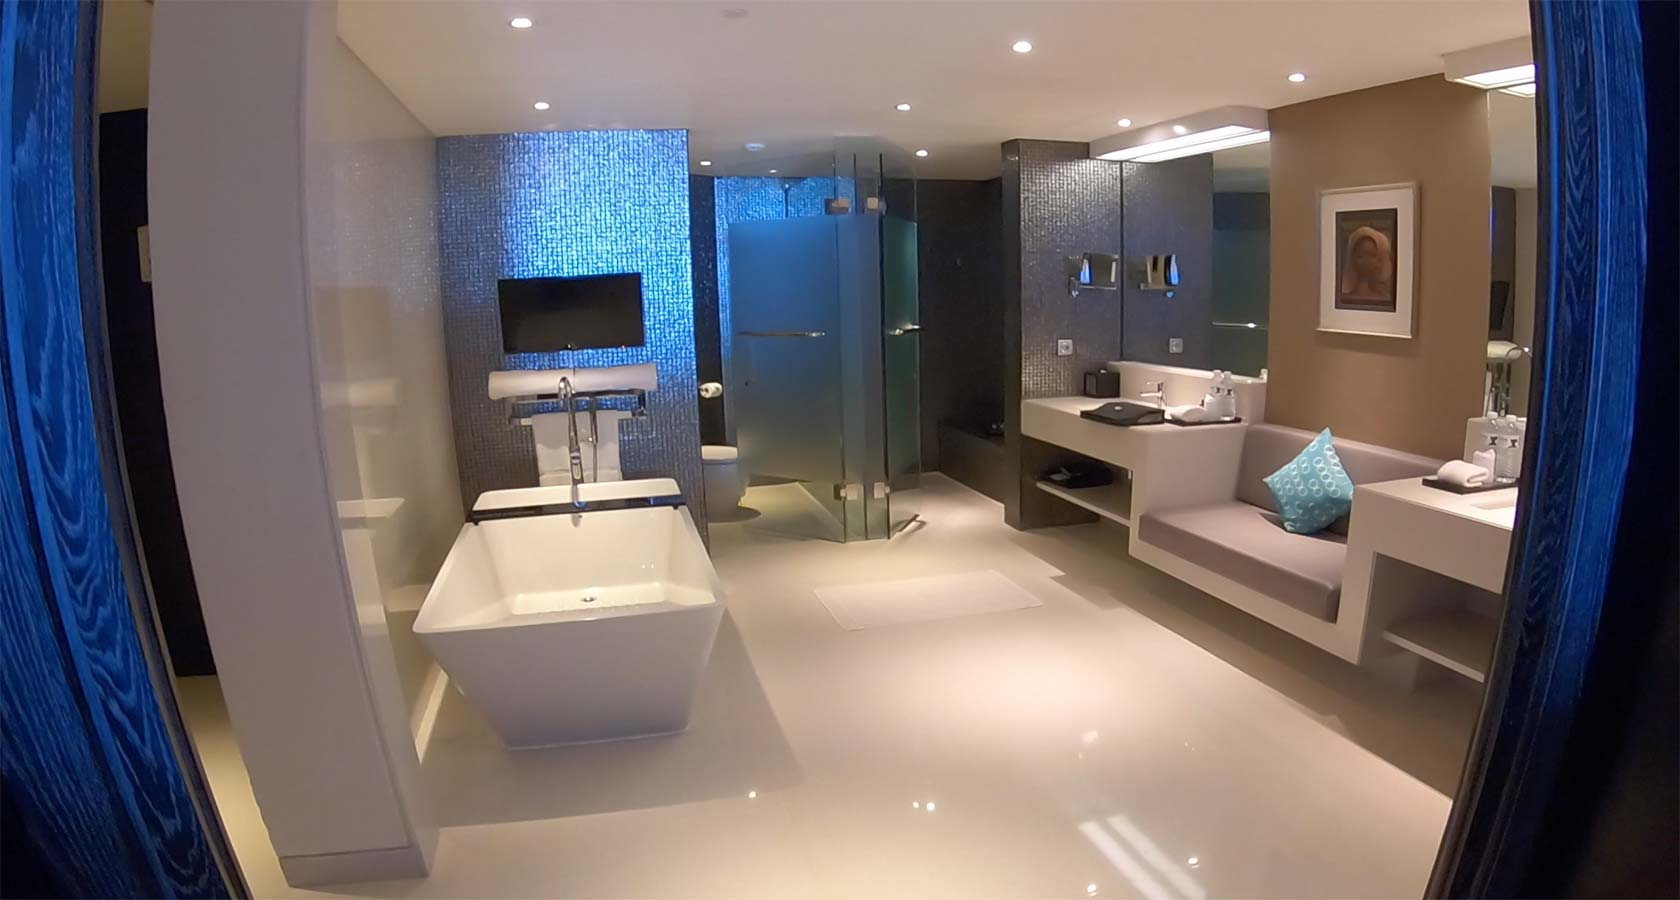 DOUBLE SIX LUXURY HOTEL SEMINYAK bathroom